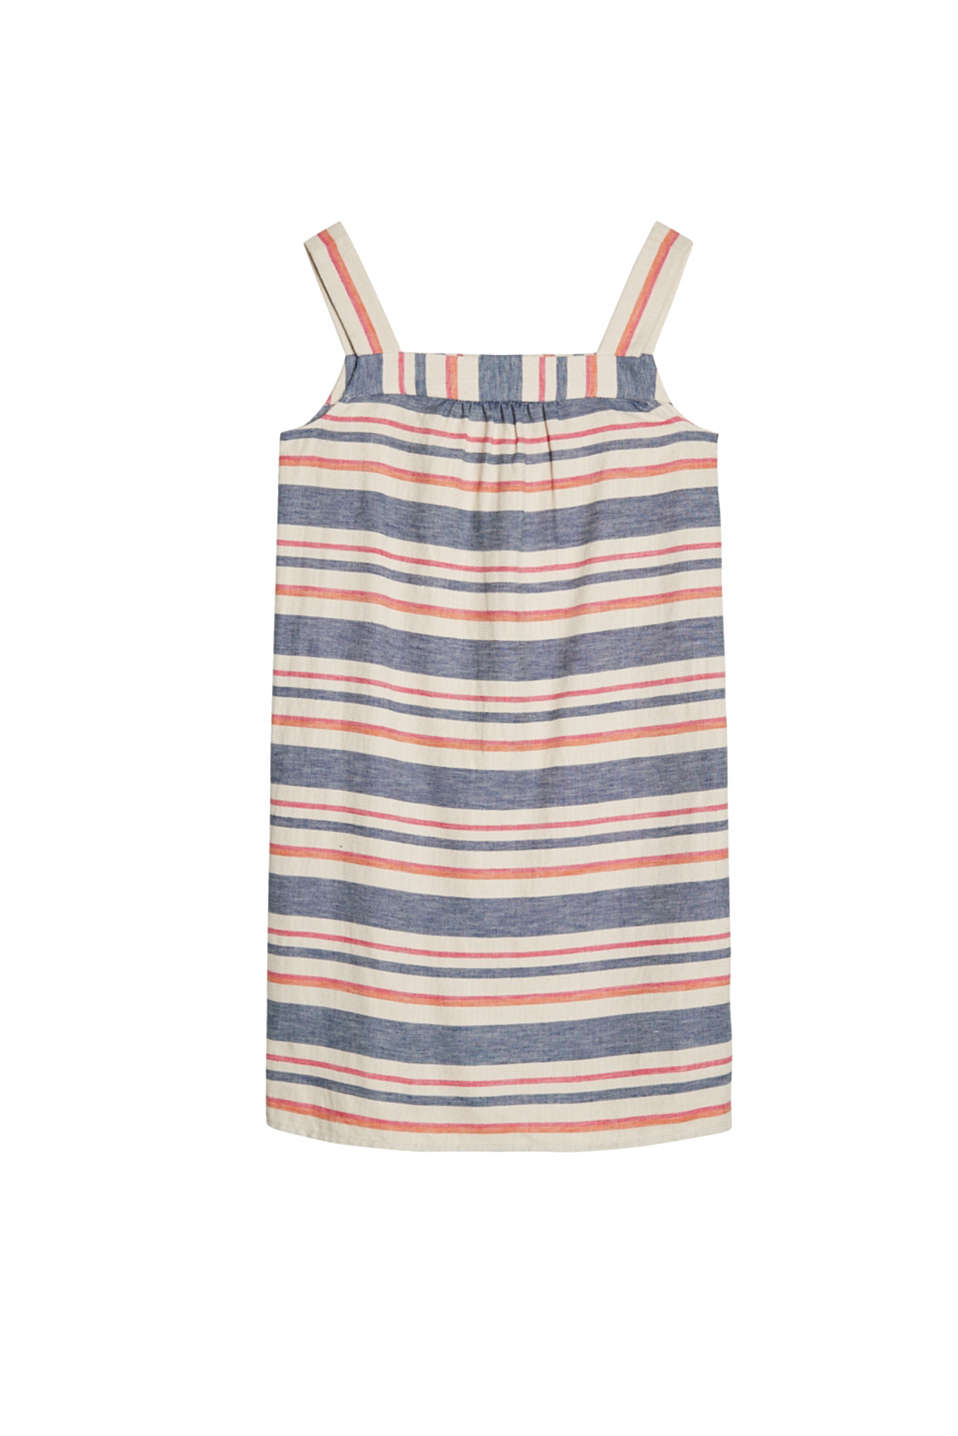 Straight cut strap dress with block stripes in airy blended linen